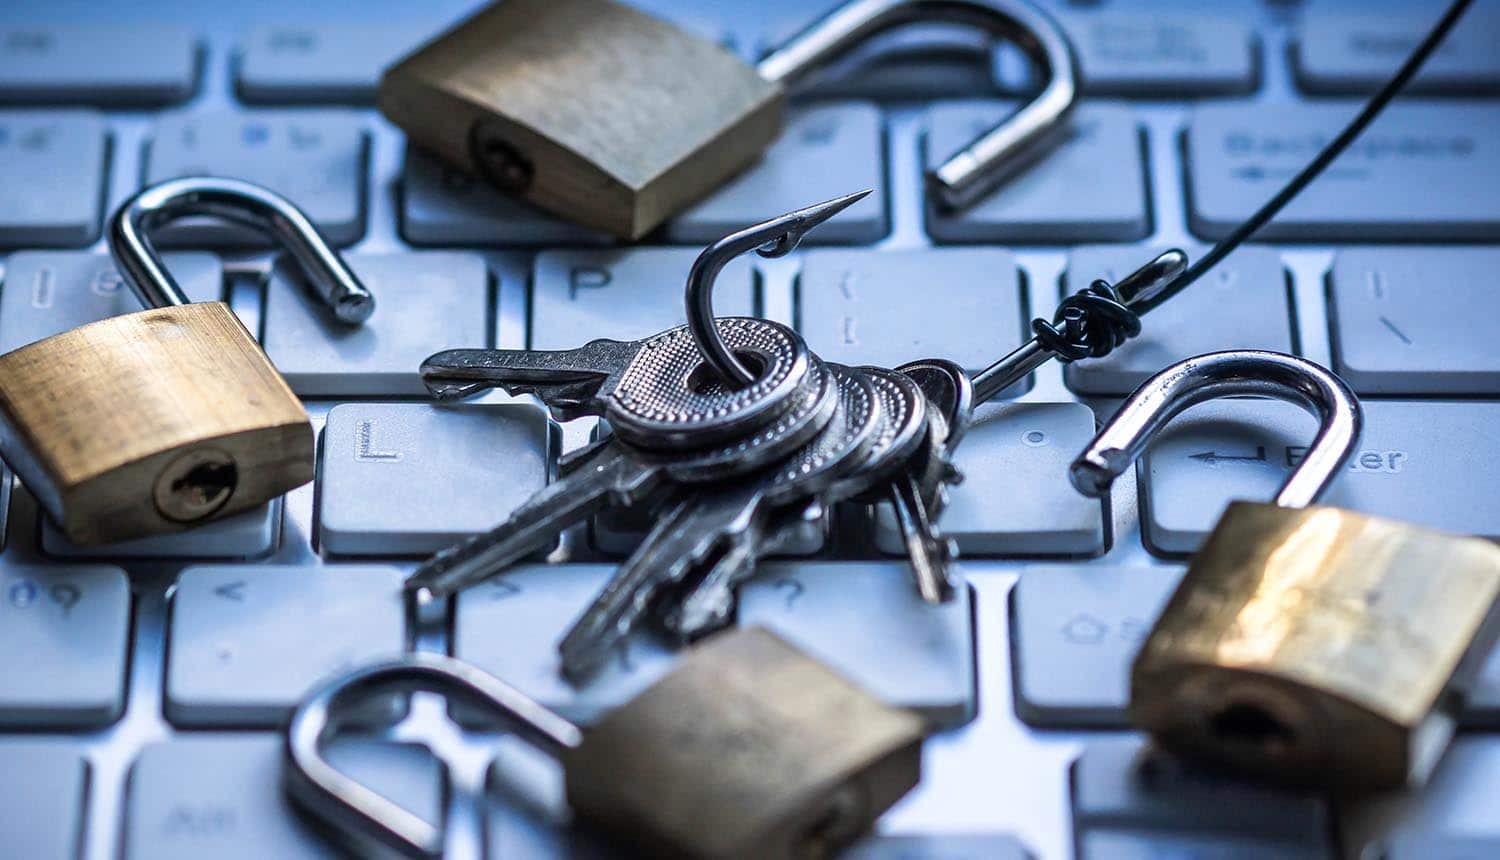 Keys on hook with opened padlocks on keyboard showing polymorphic phishing attacks making up almost half of phishing attempts